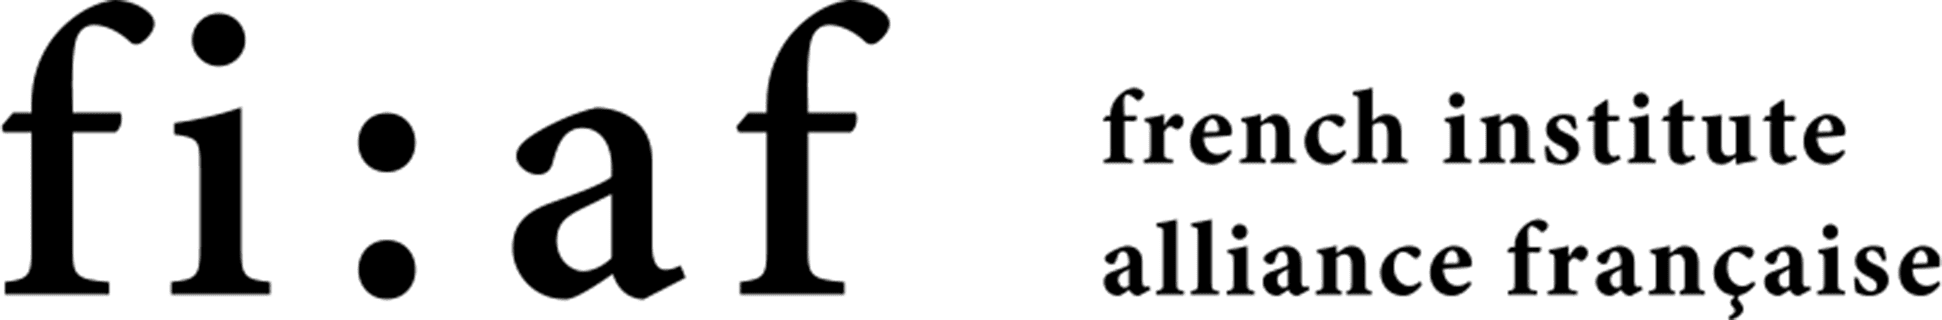 FIAF: French Institute Alliance Française